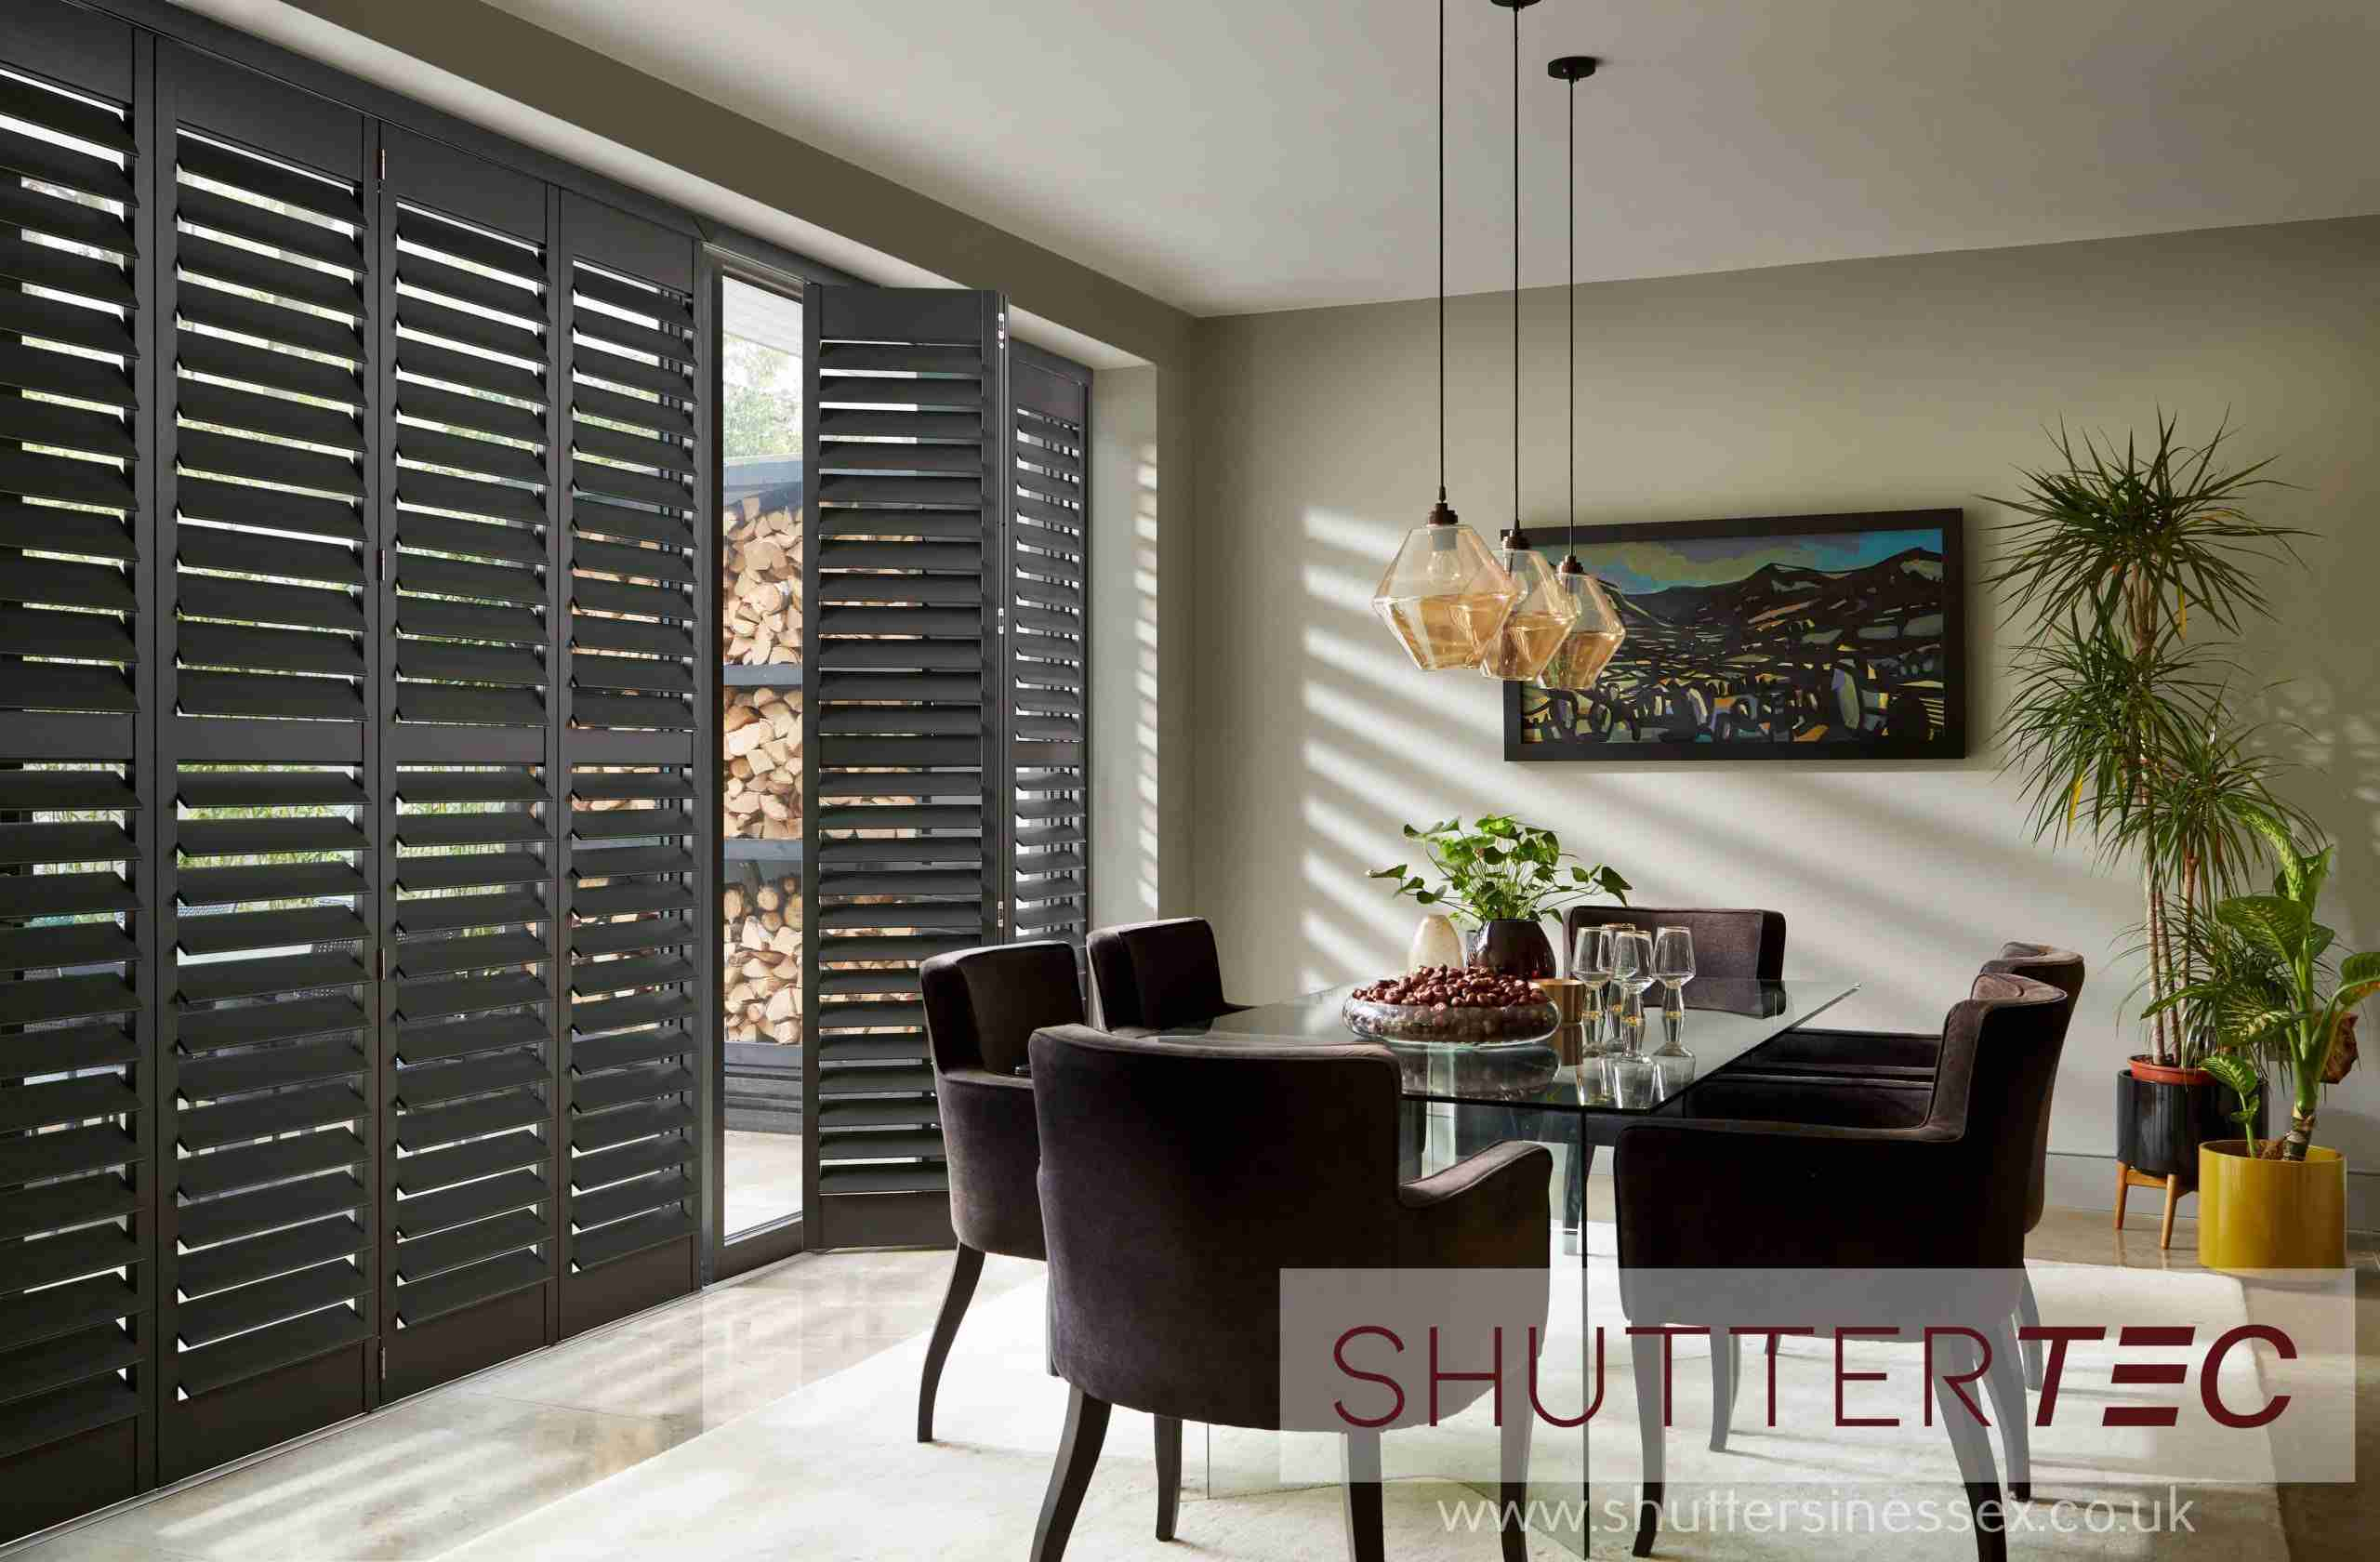 Title graphic for Shuttertec blog about shutters for patio doors